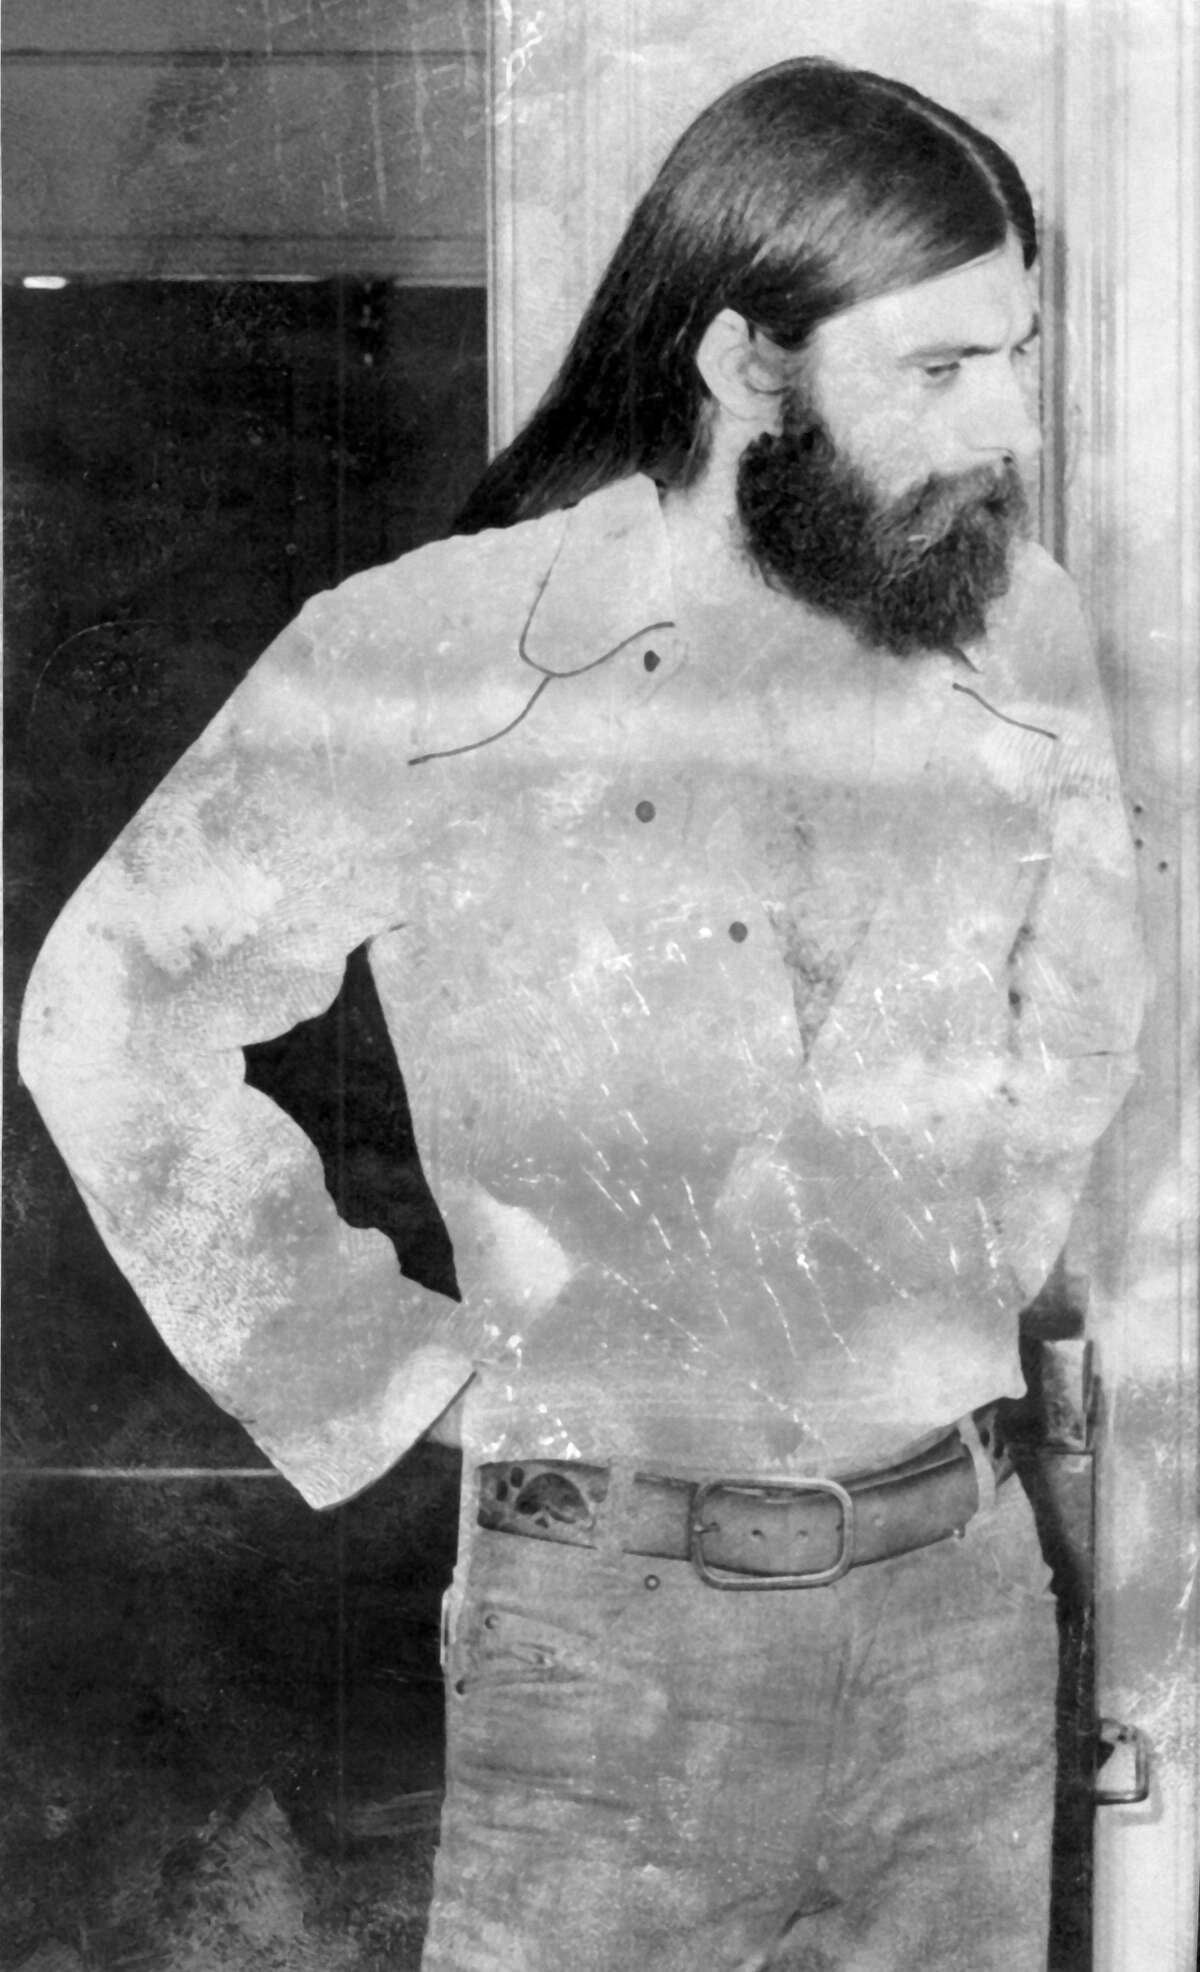 """Richard C. Dexter, shown here, was arrested in 1974 for showing """"Deep Throat""""at the now-demolished Fiesta Theater at the 200 block on West Houston Street. Hewas charged with possession of a criminal instrument (movie projector) because the movie raised concerns of obscenity."""